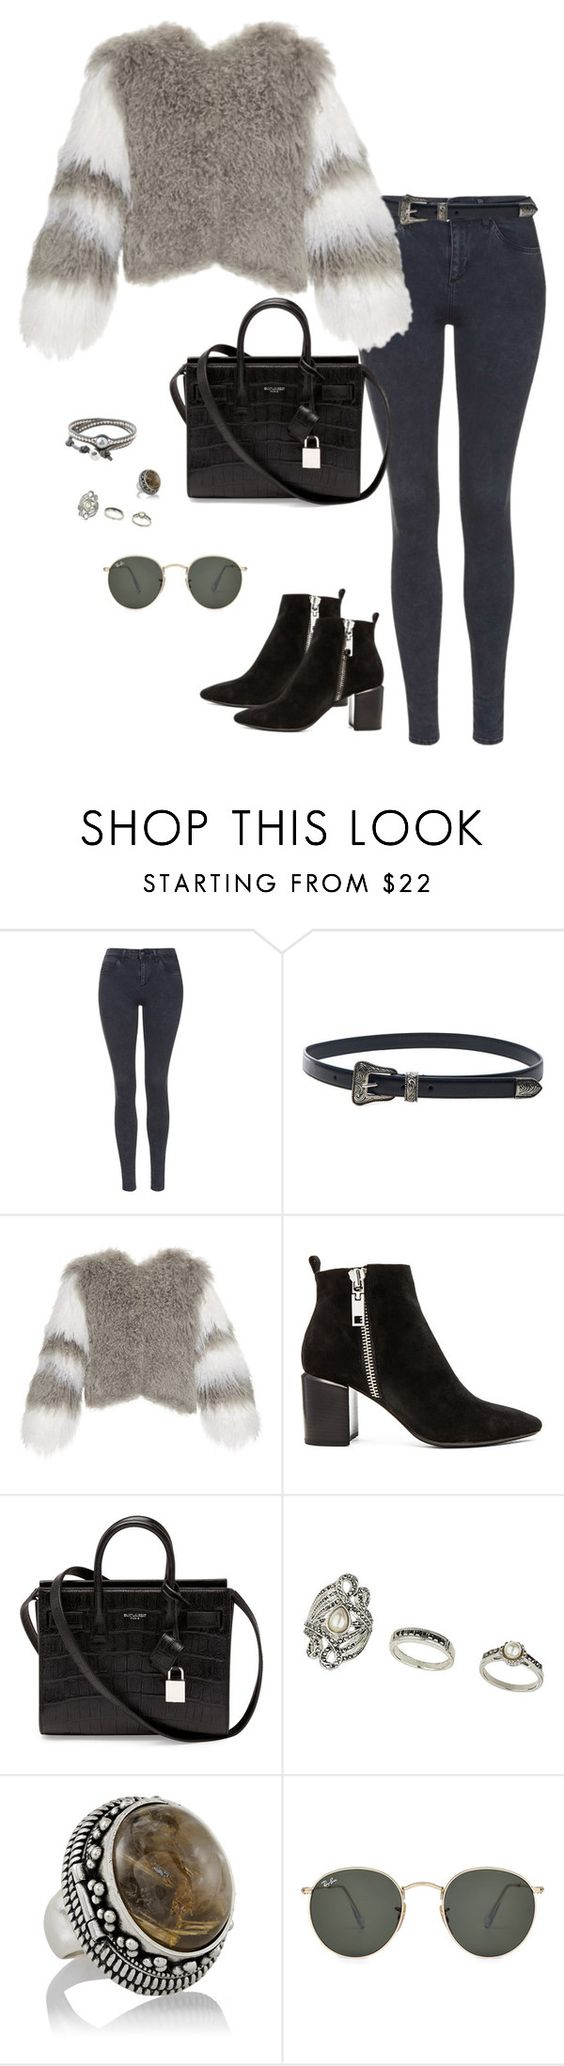 """""""Untitled #2206"""" by andreagm ❤ liked on Polyvore featuring Topshop, Yves Saint Laurent, Charlotte Simone, Dolce Vita, Ray-Ban, Colana, women's clothing, women, female and woman"""